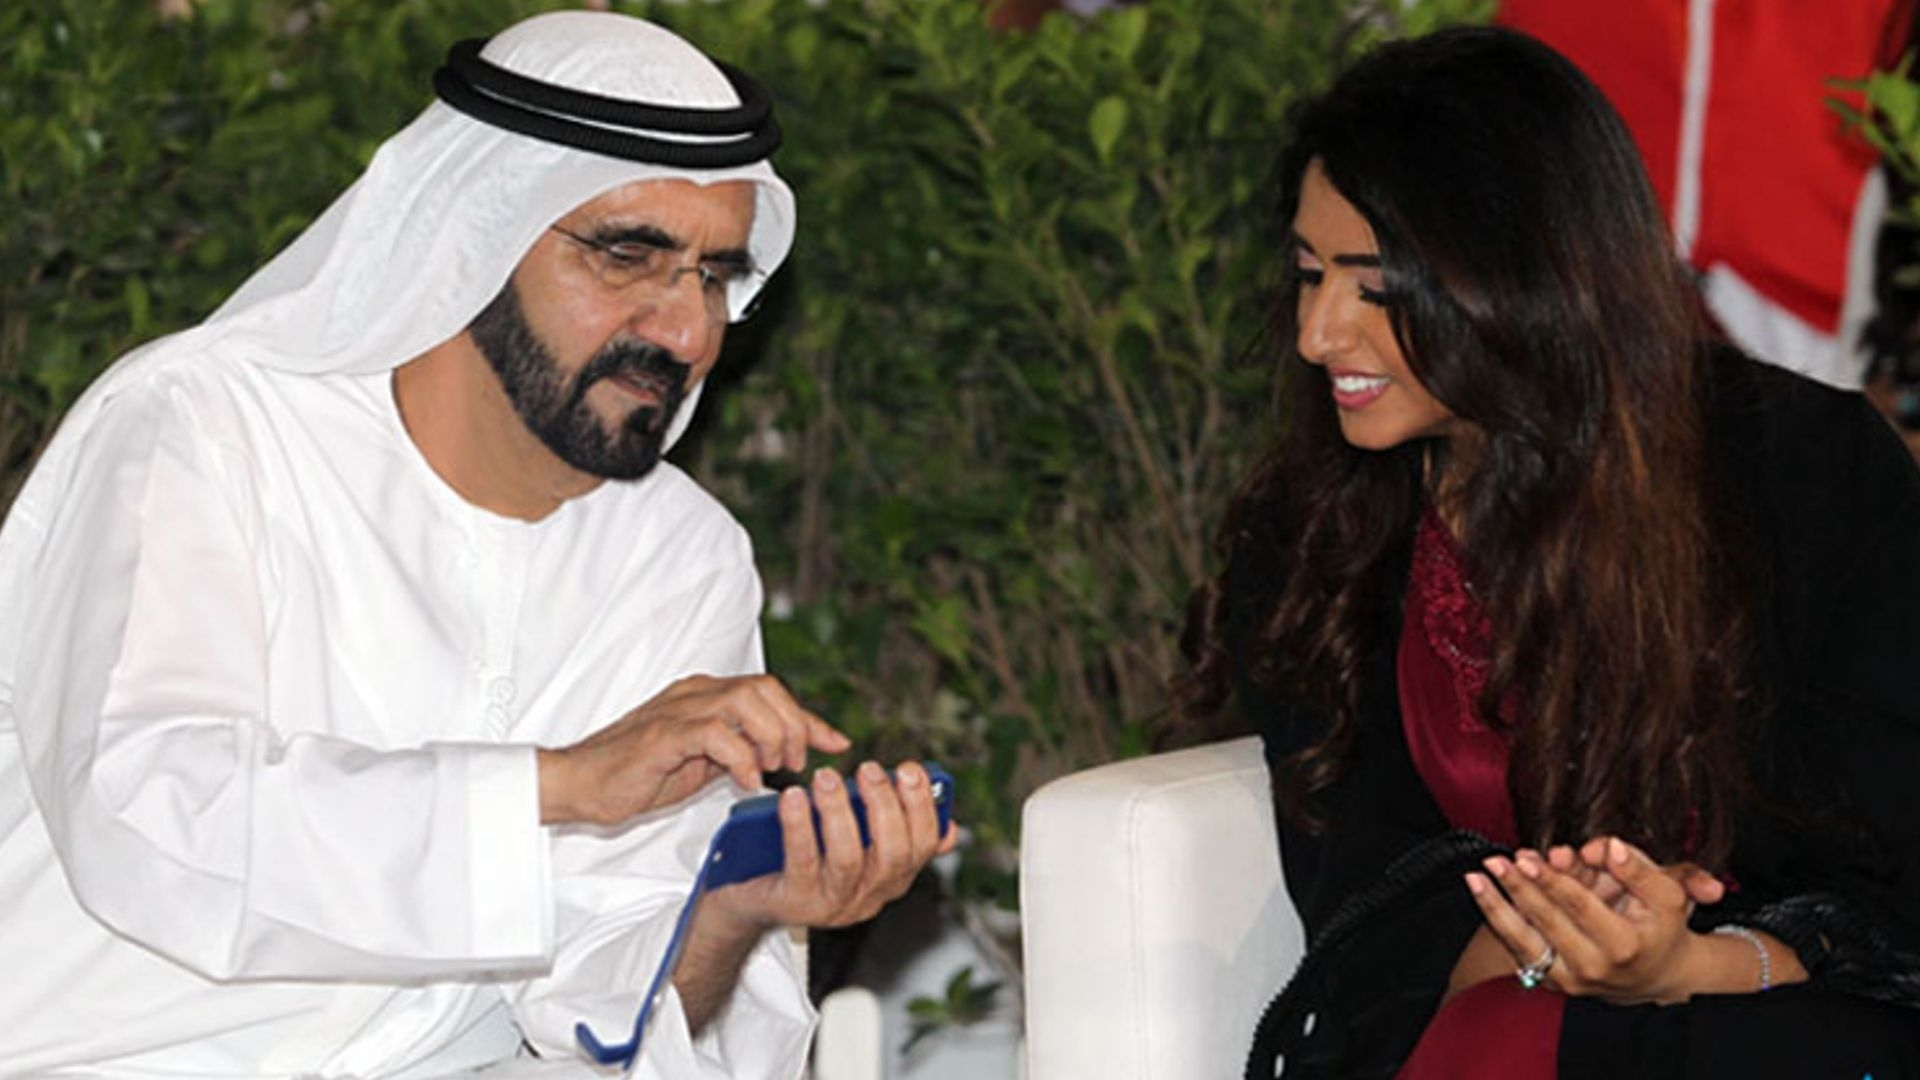 Sheikh Mohammed's Daughter, Sheikha Maryam, Just Got Married